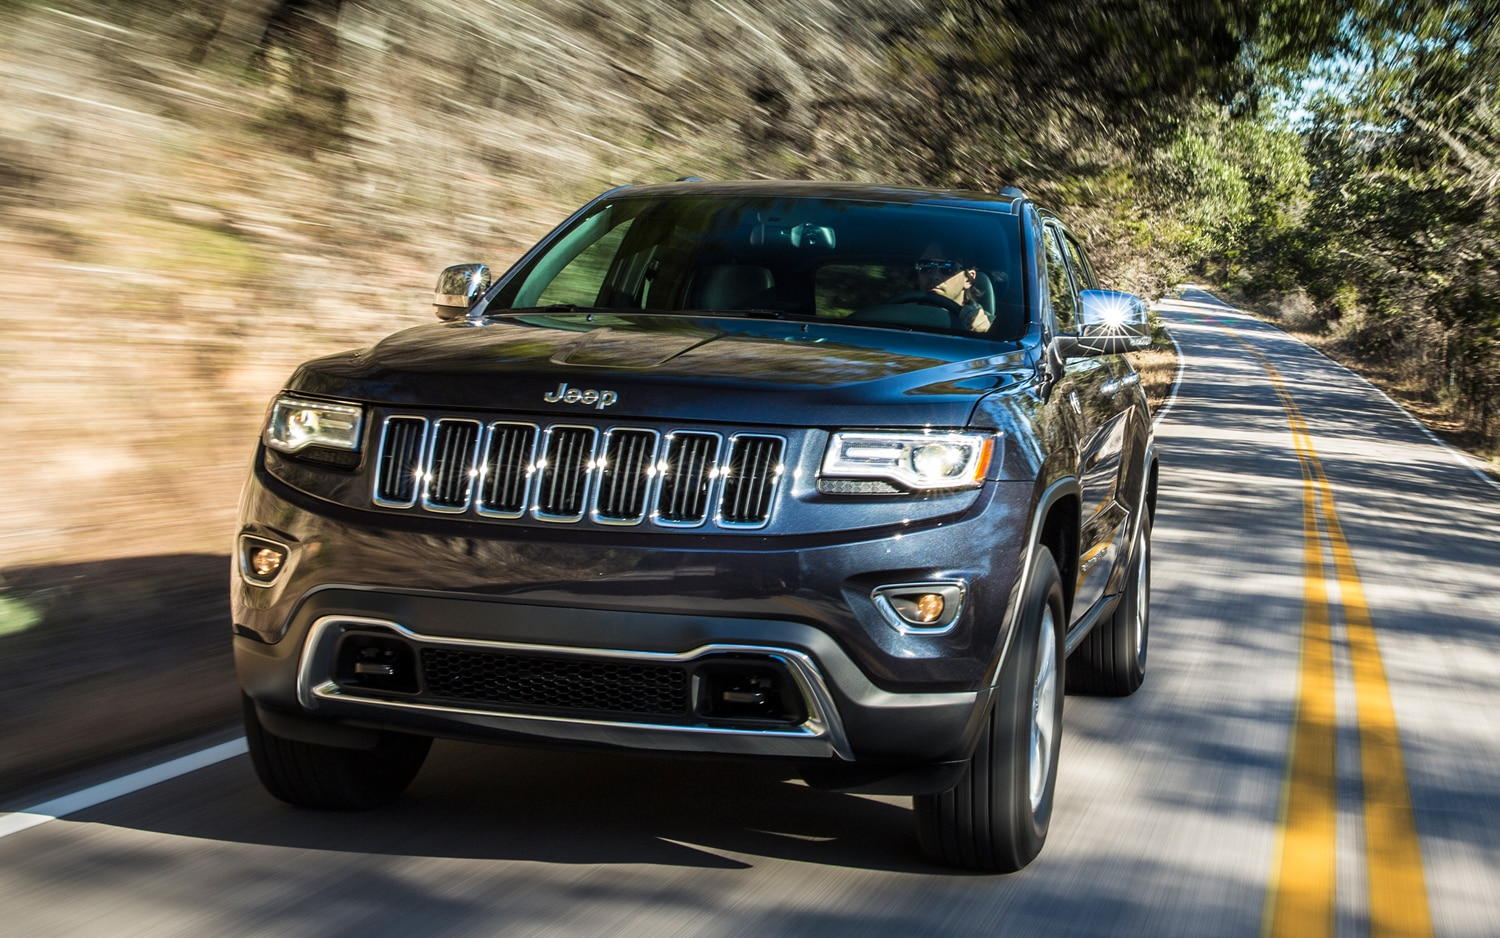 2014 Jeep Grand Cherokee Diesel Front View In Motion